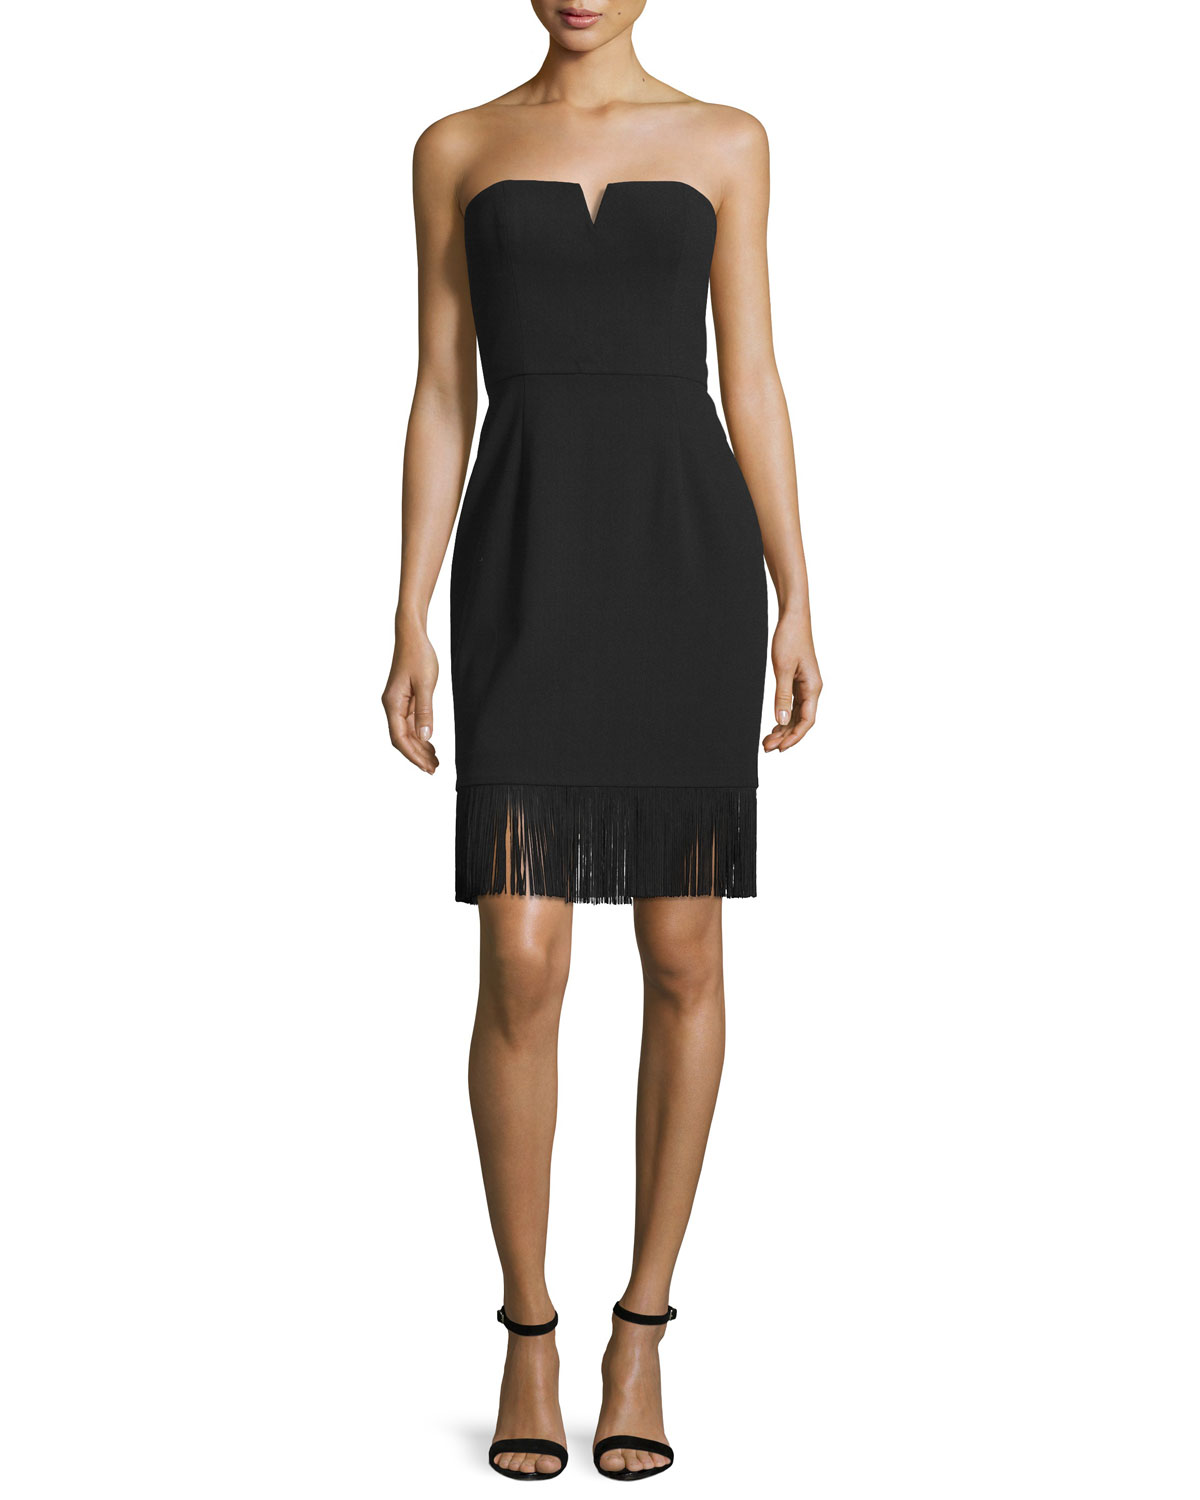 Strapless Sheath Dress W/Fringe Hem, Black